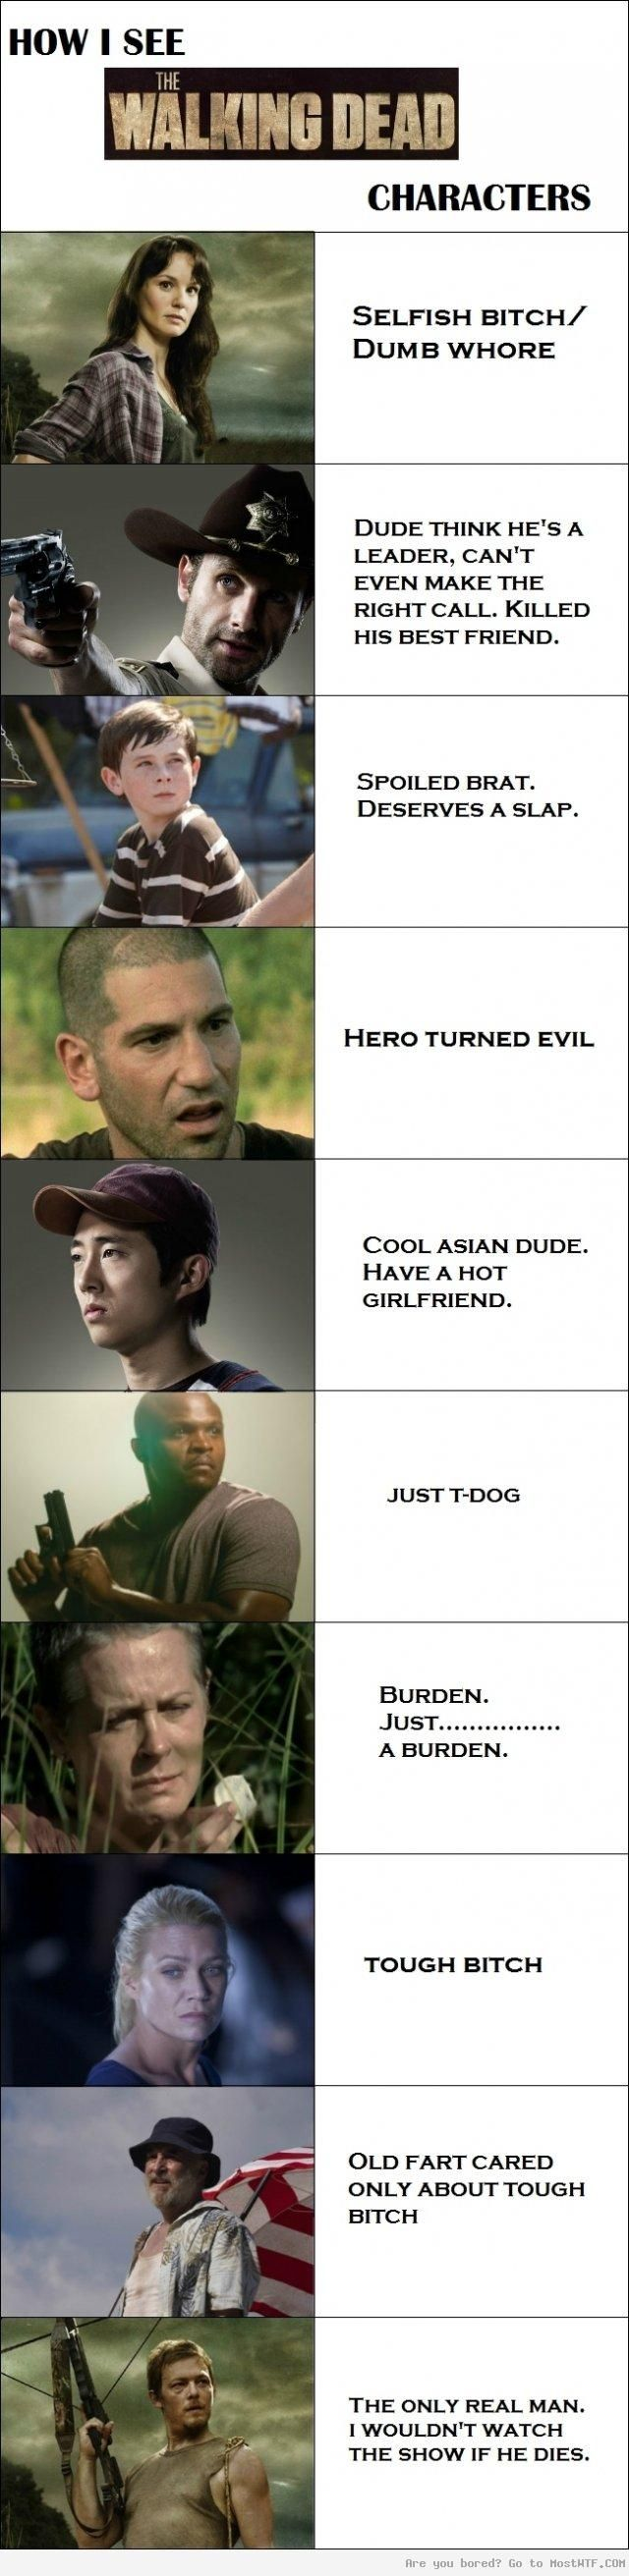 How I see The Walking Dead Characters  http://mostwtf.com/homework-level-i-have-no-idea-what-i-m-doing_2854.html